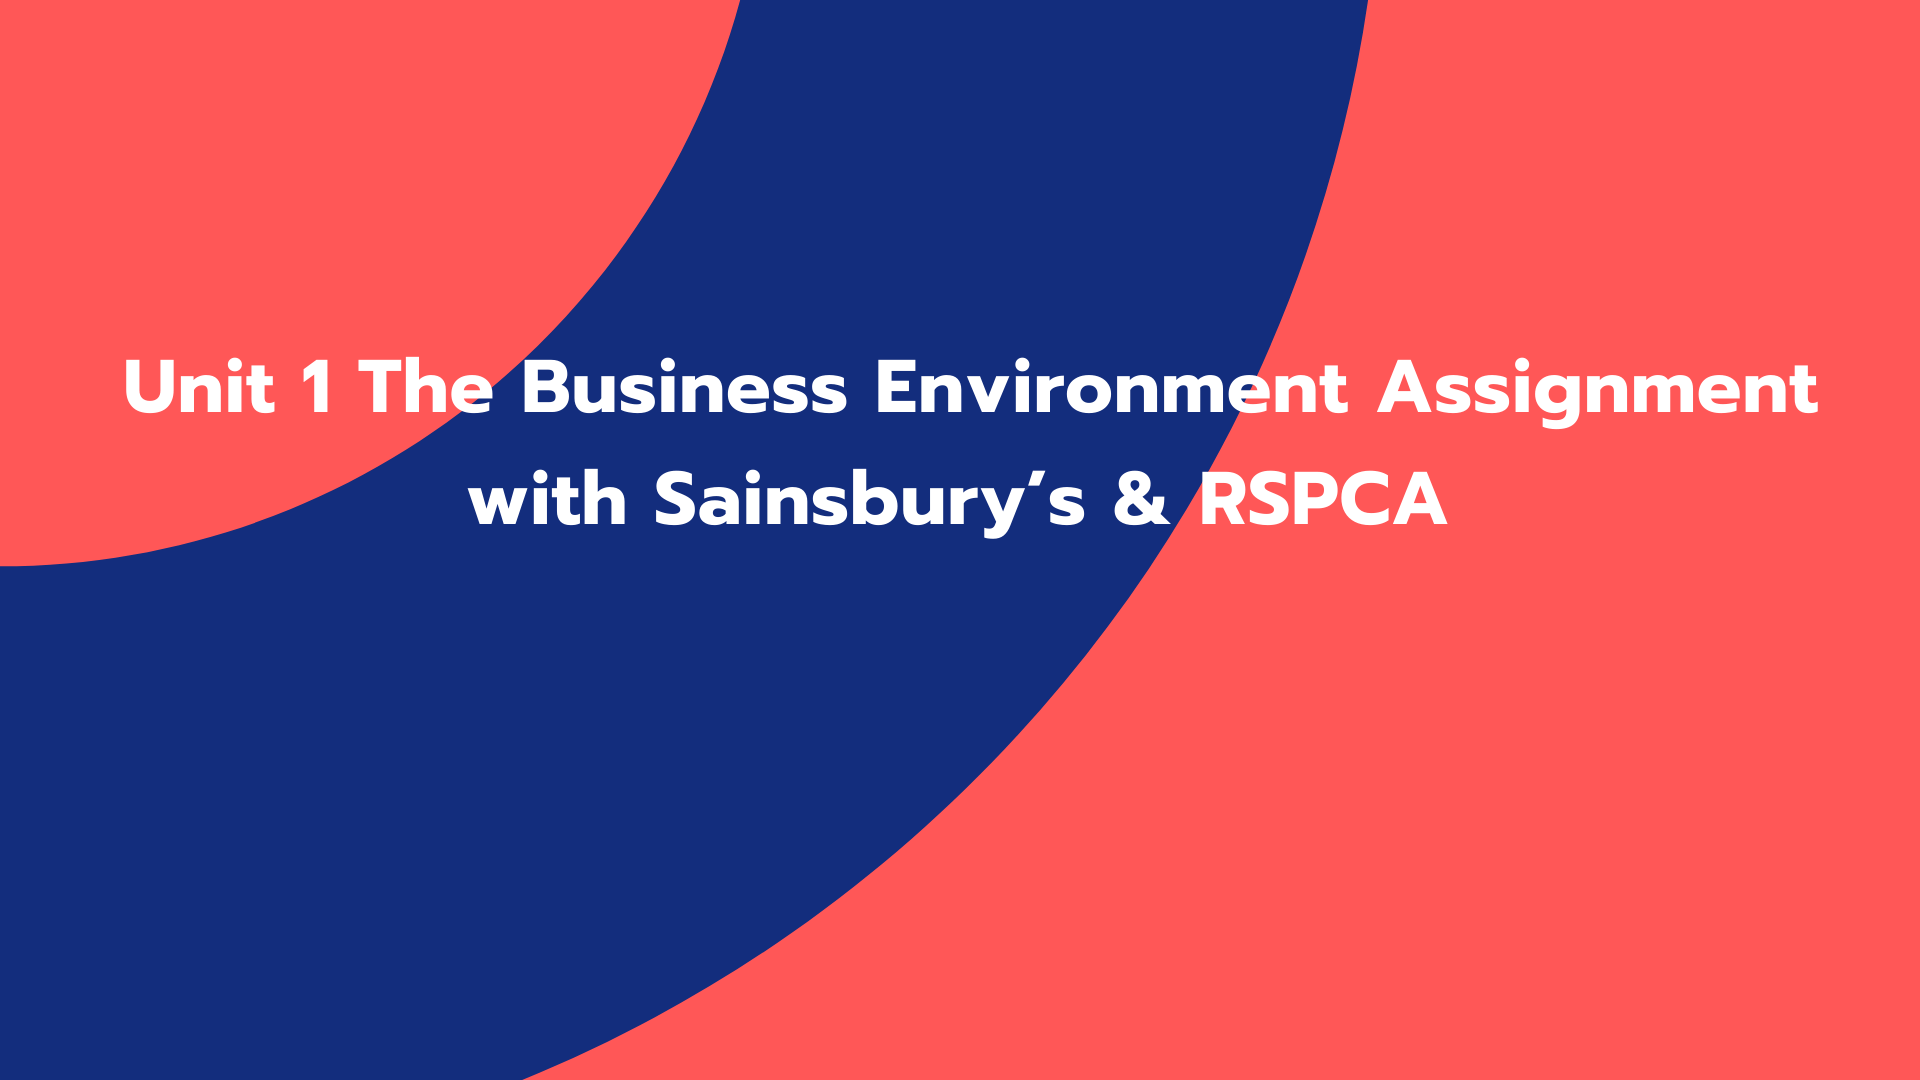 Unit 1 The Business Environment Assignment with Sainsbury's & RSPCA